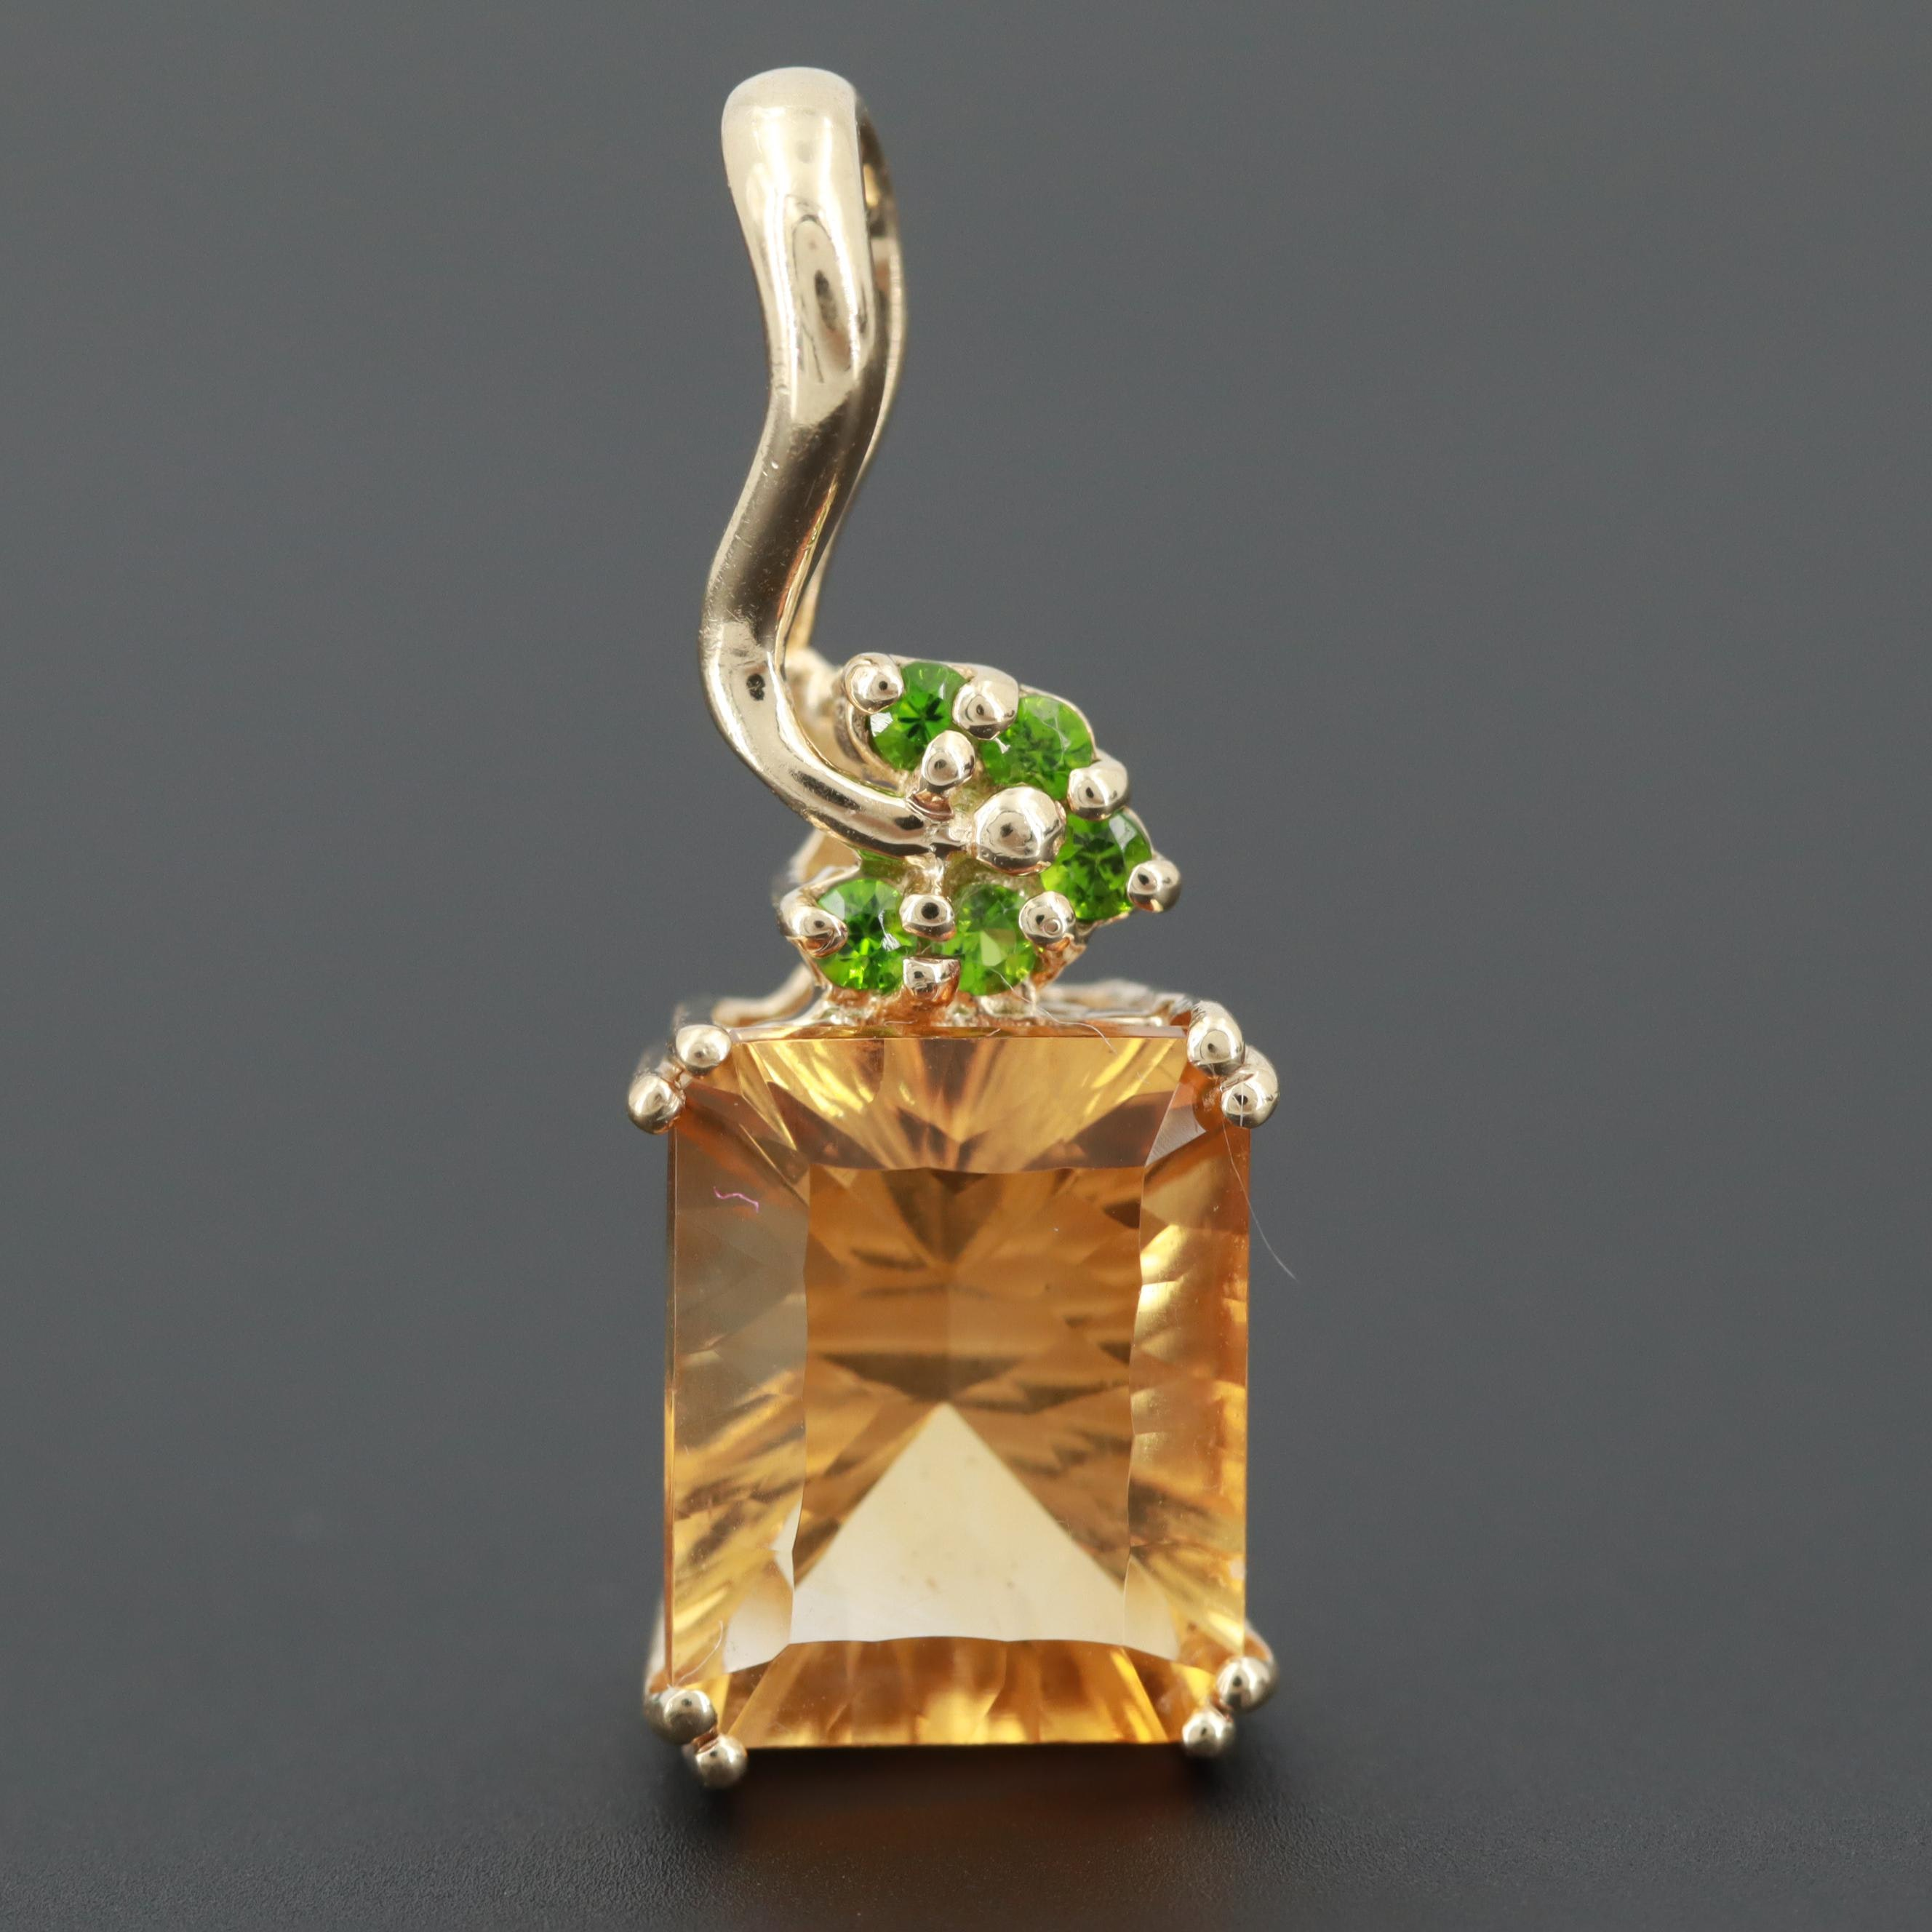 10K Yellow Gold Citrine and Diopside Pendant